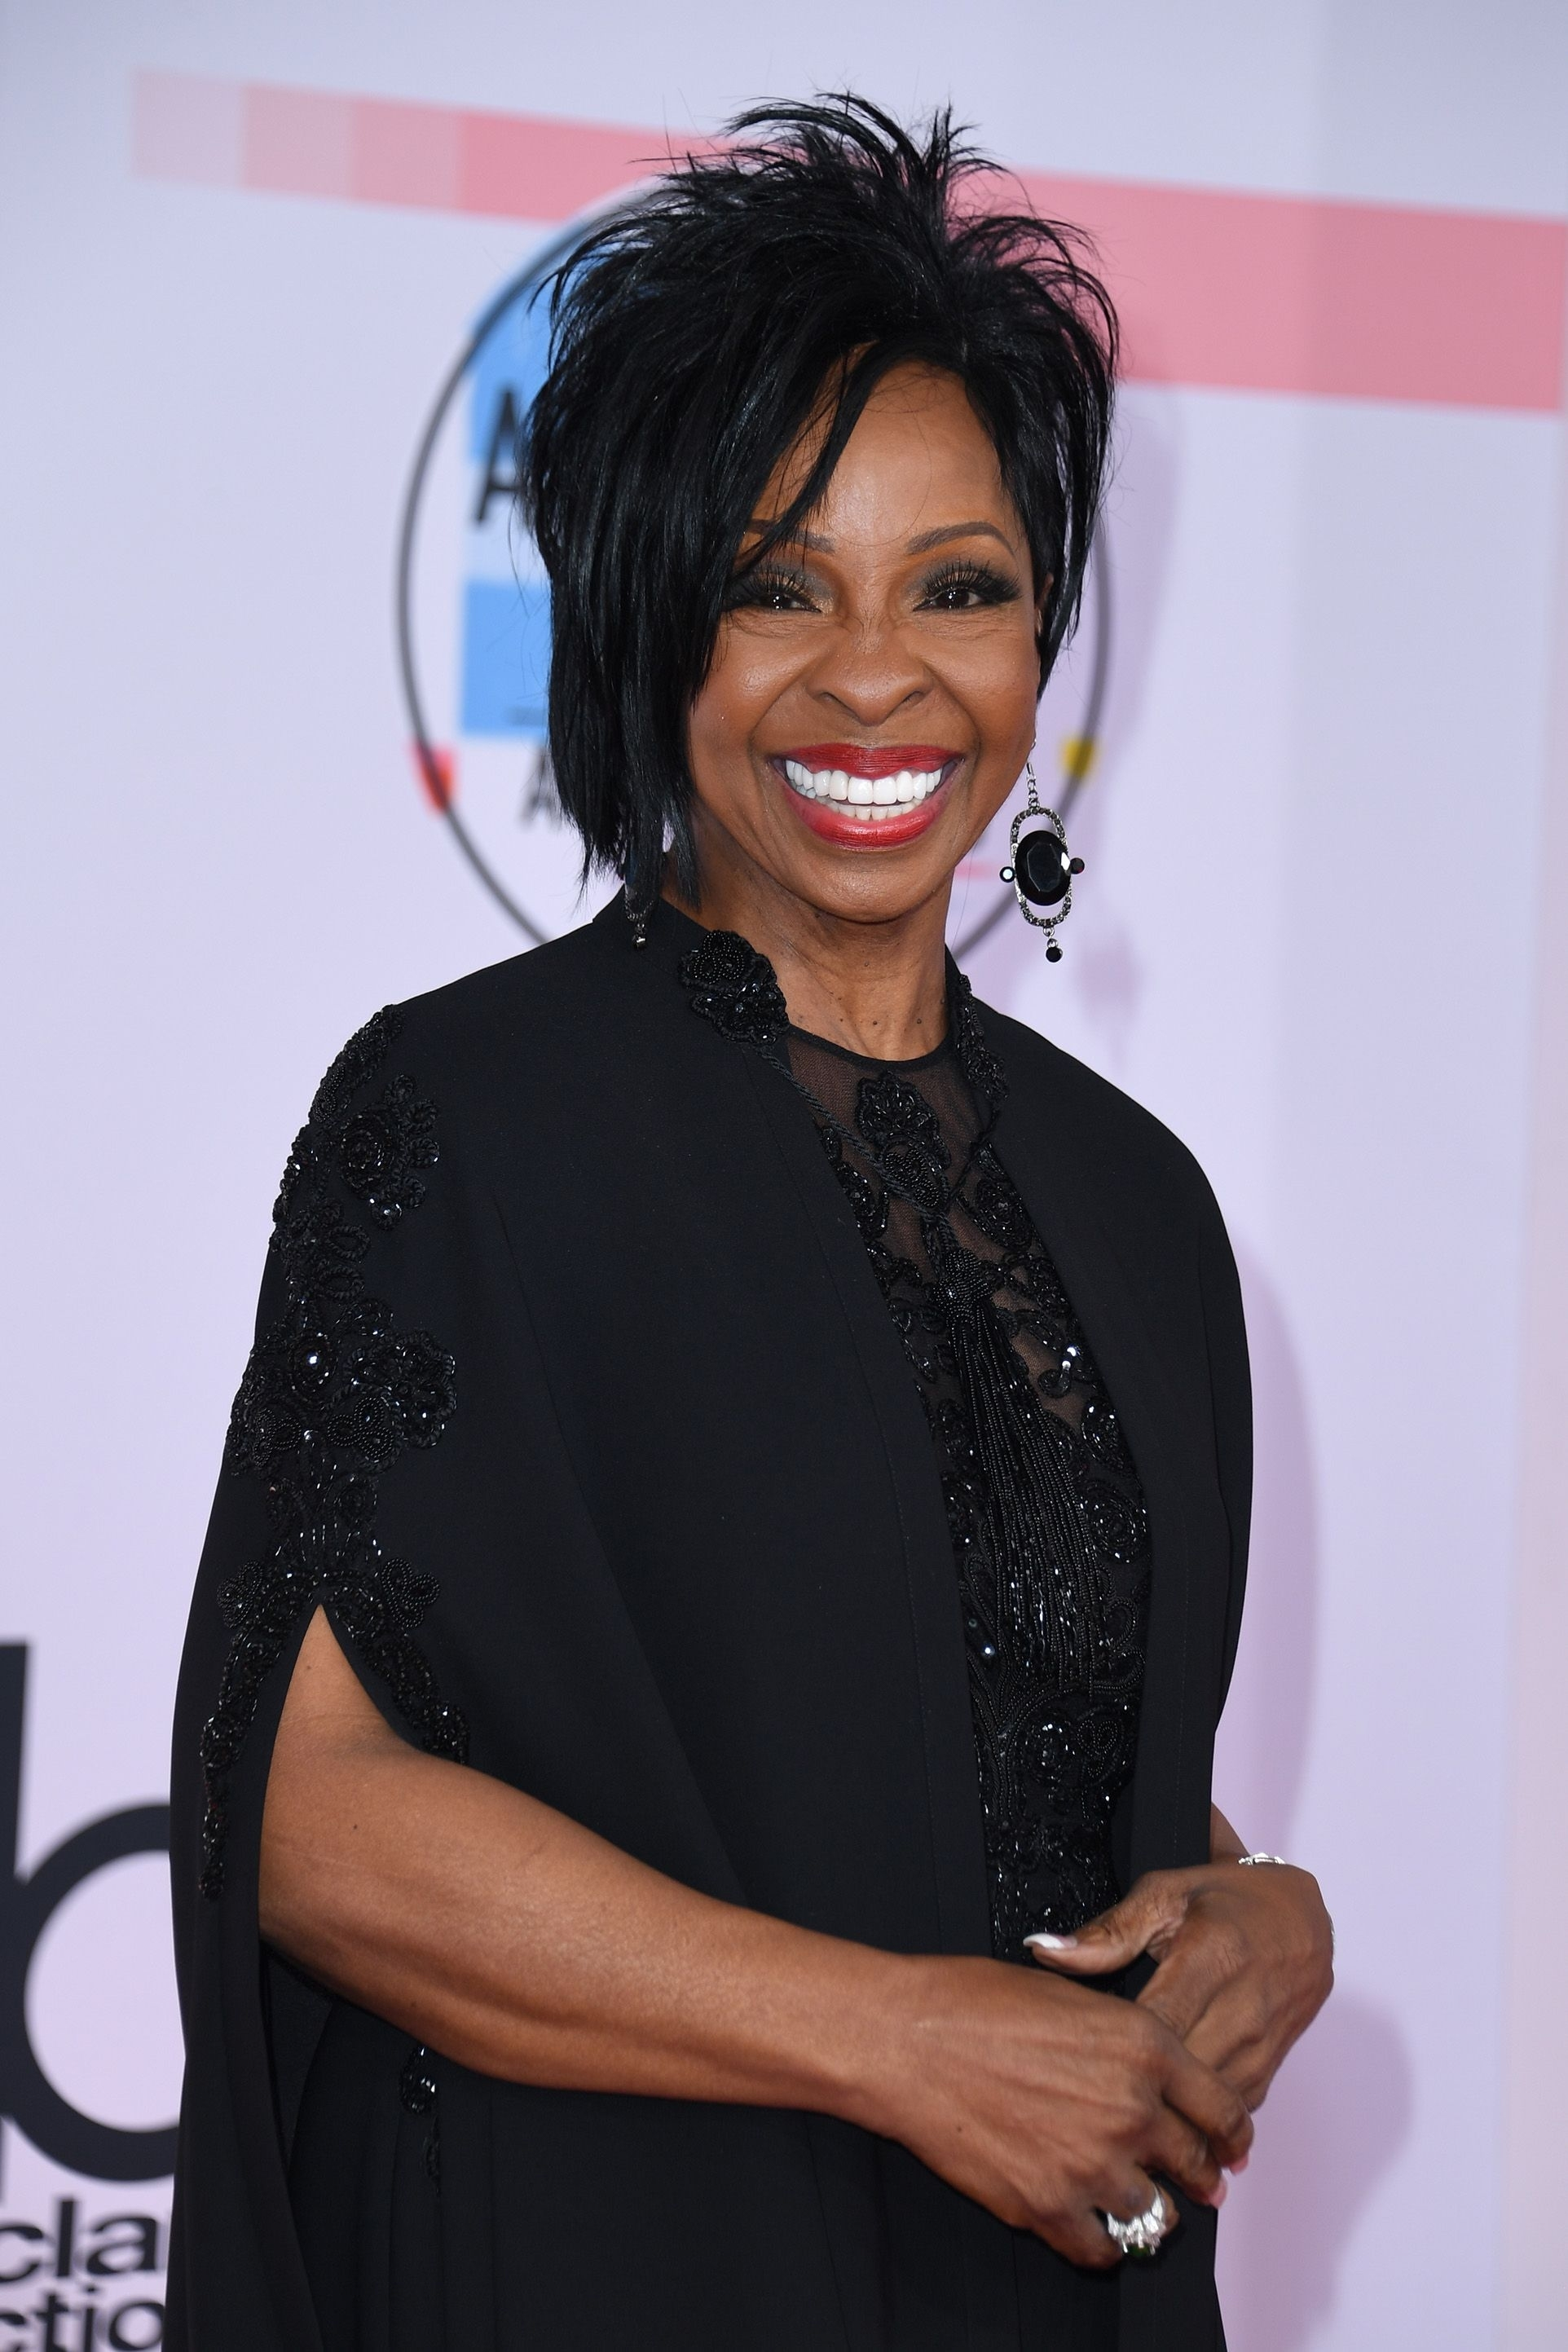 Gladys Knight To Sing At Super Bowl pertaining to Super Bowl Gladys Knight